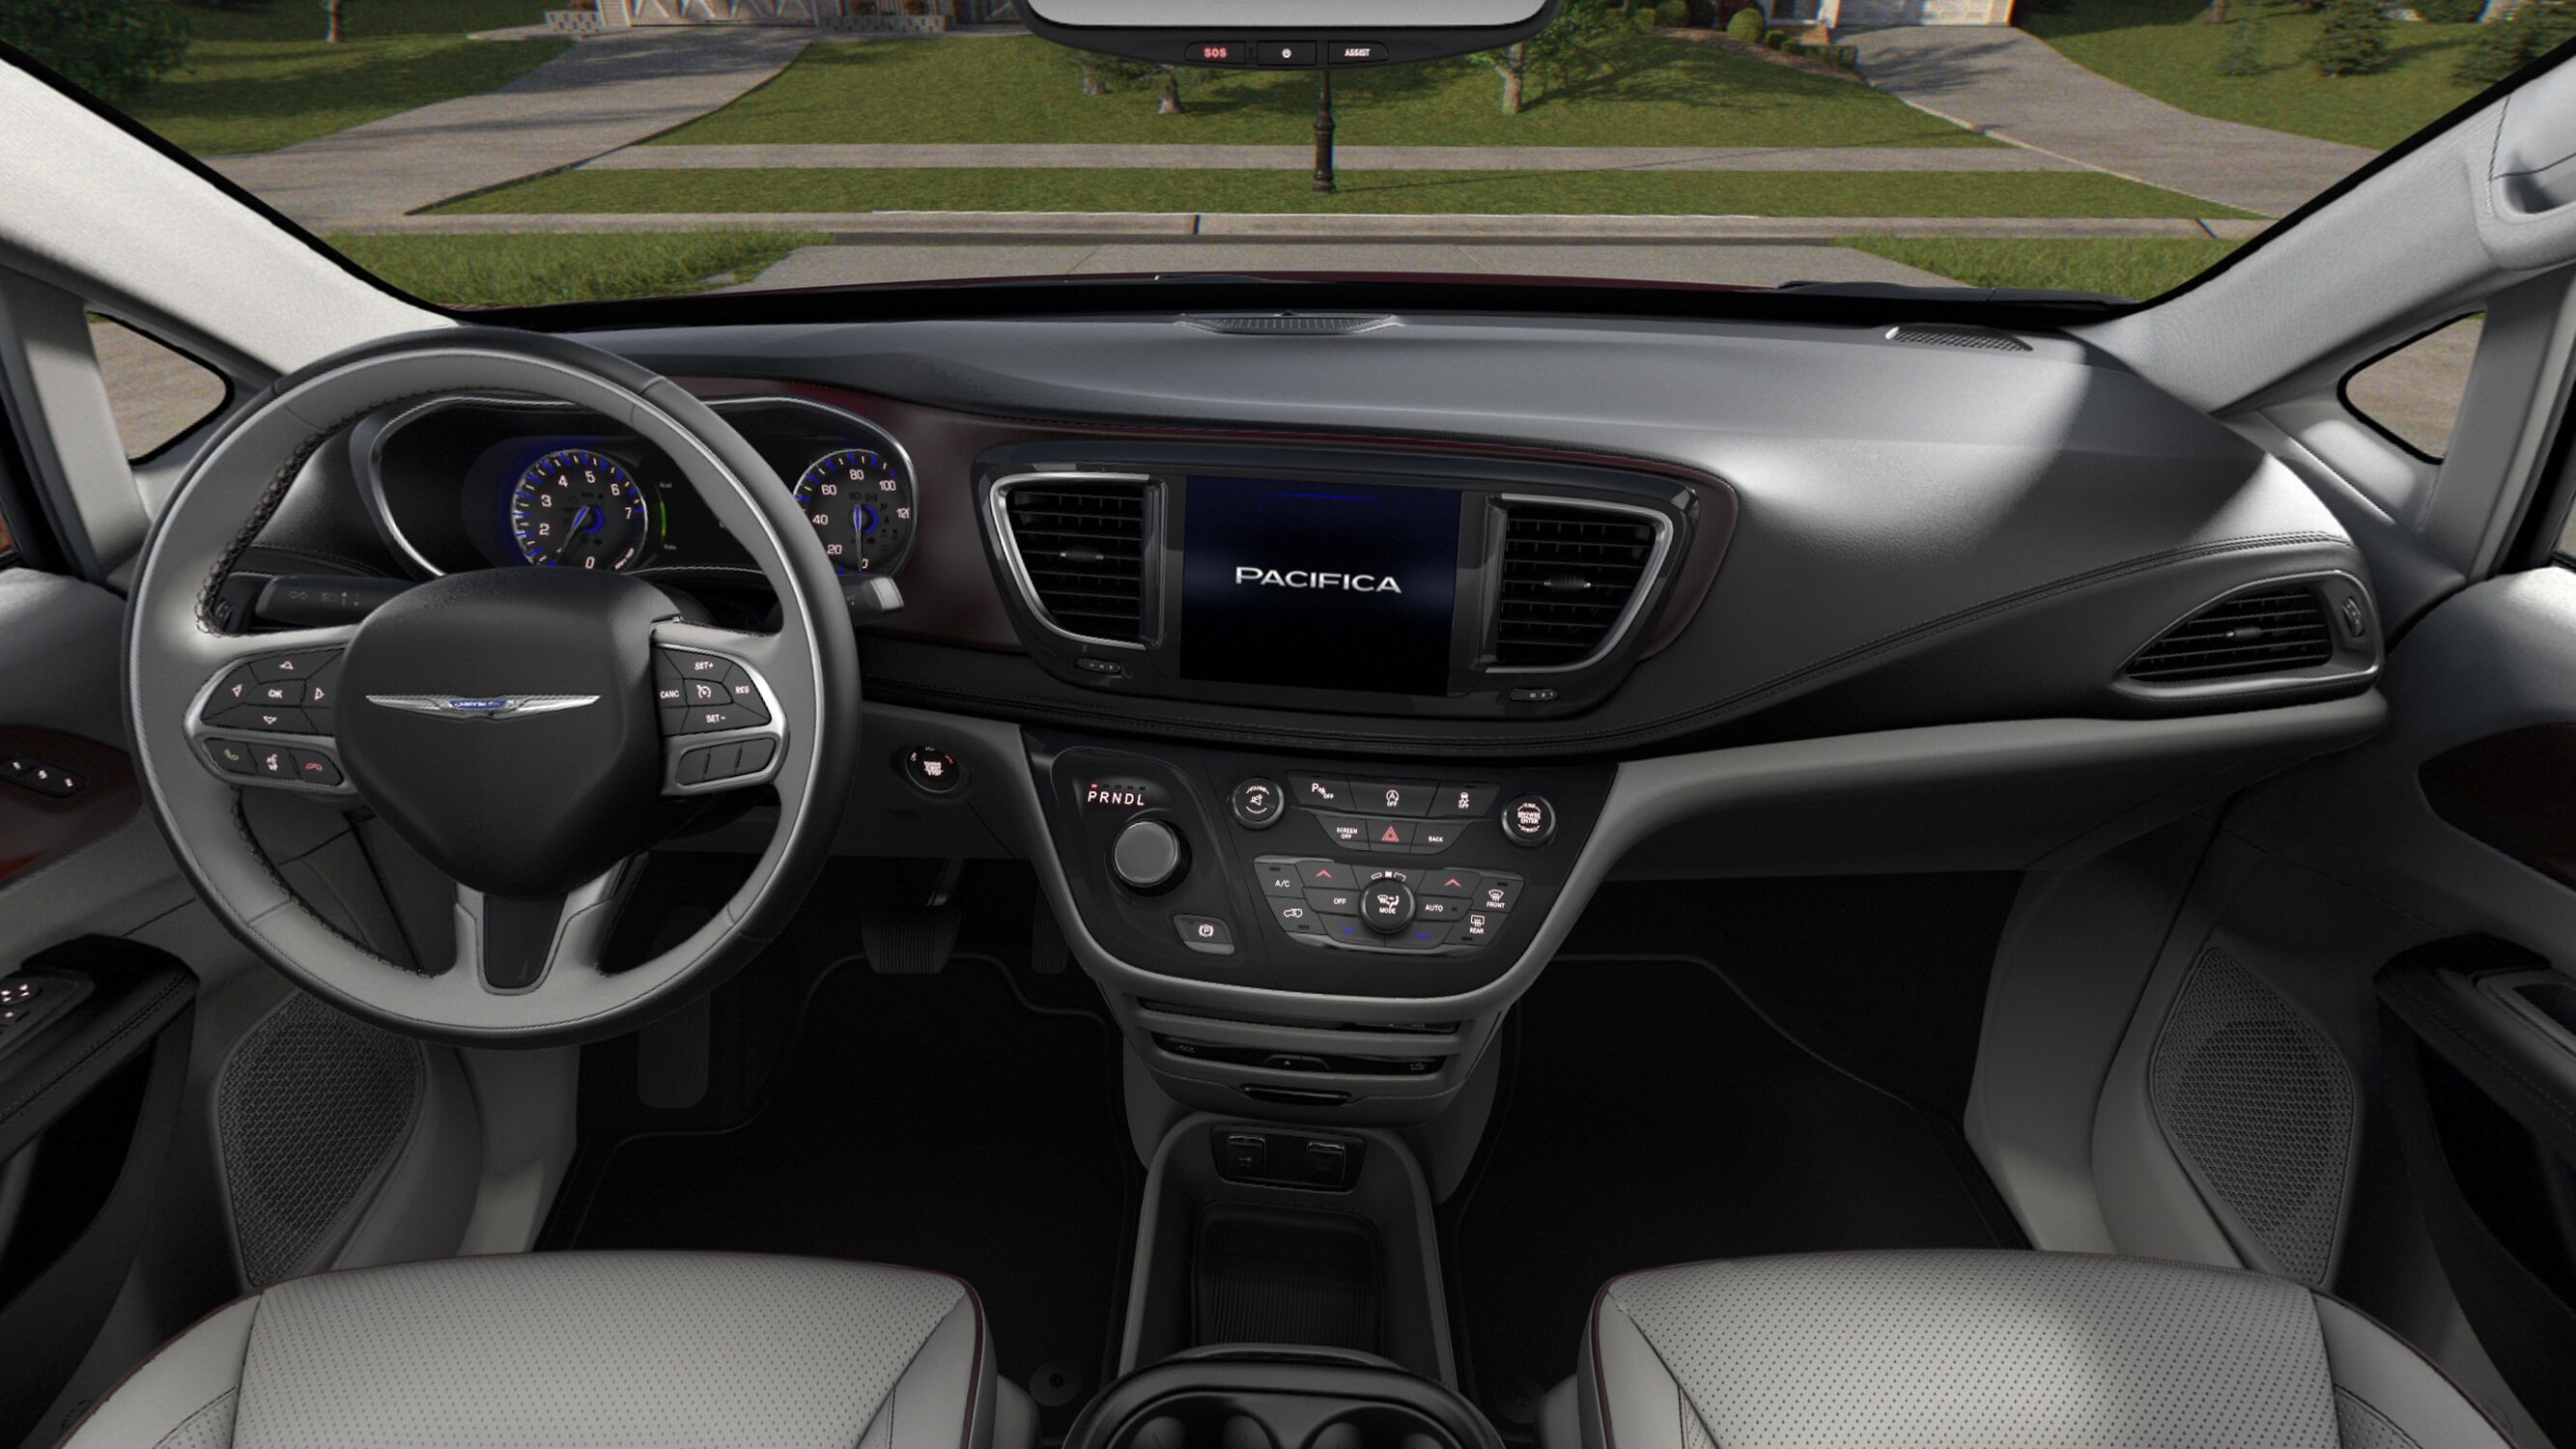 2019 Chrysler Pacifica Front Interior Detail Picture